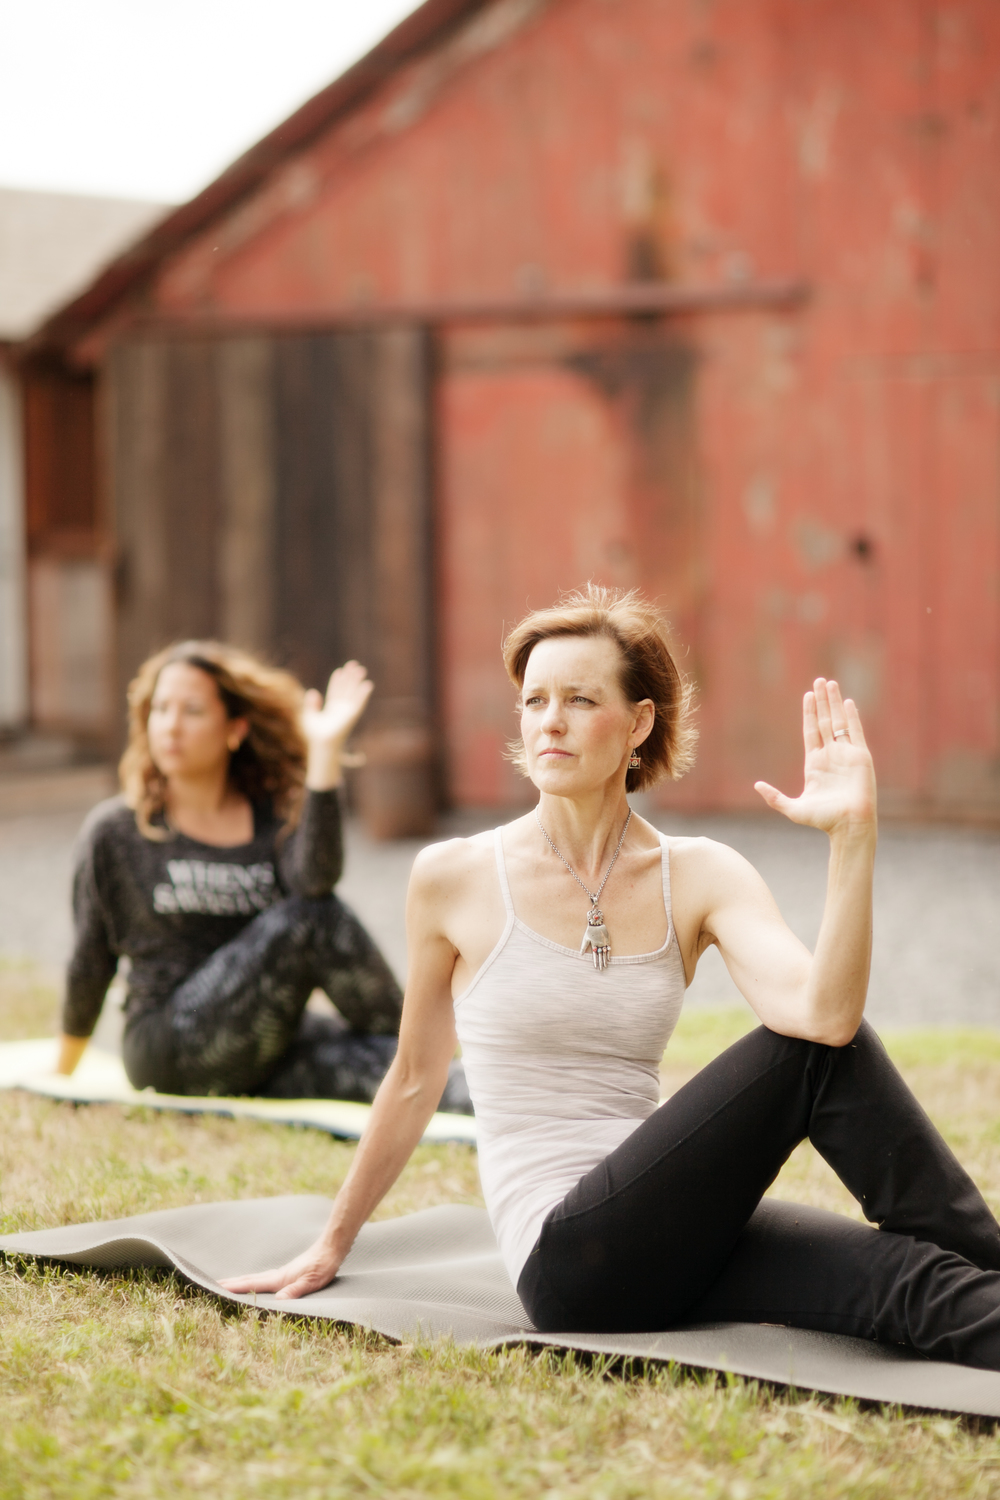 THF_stemple_yoga0219.jpg